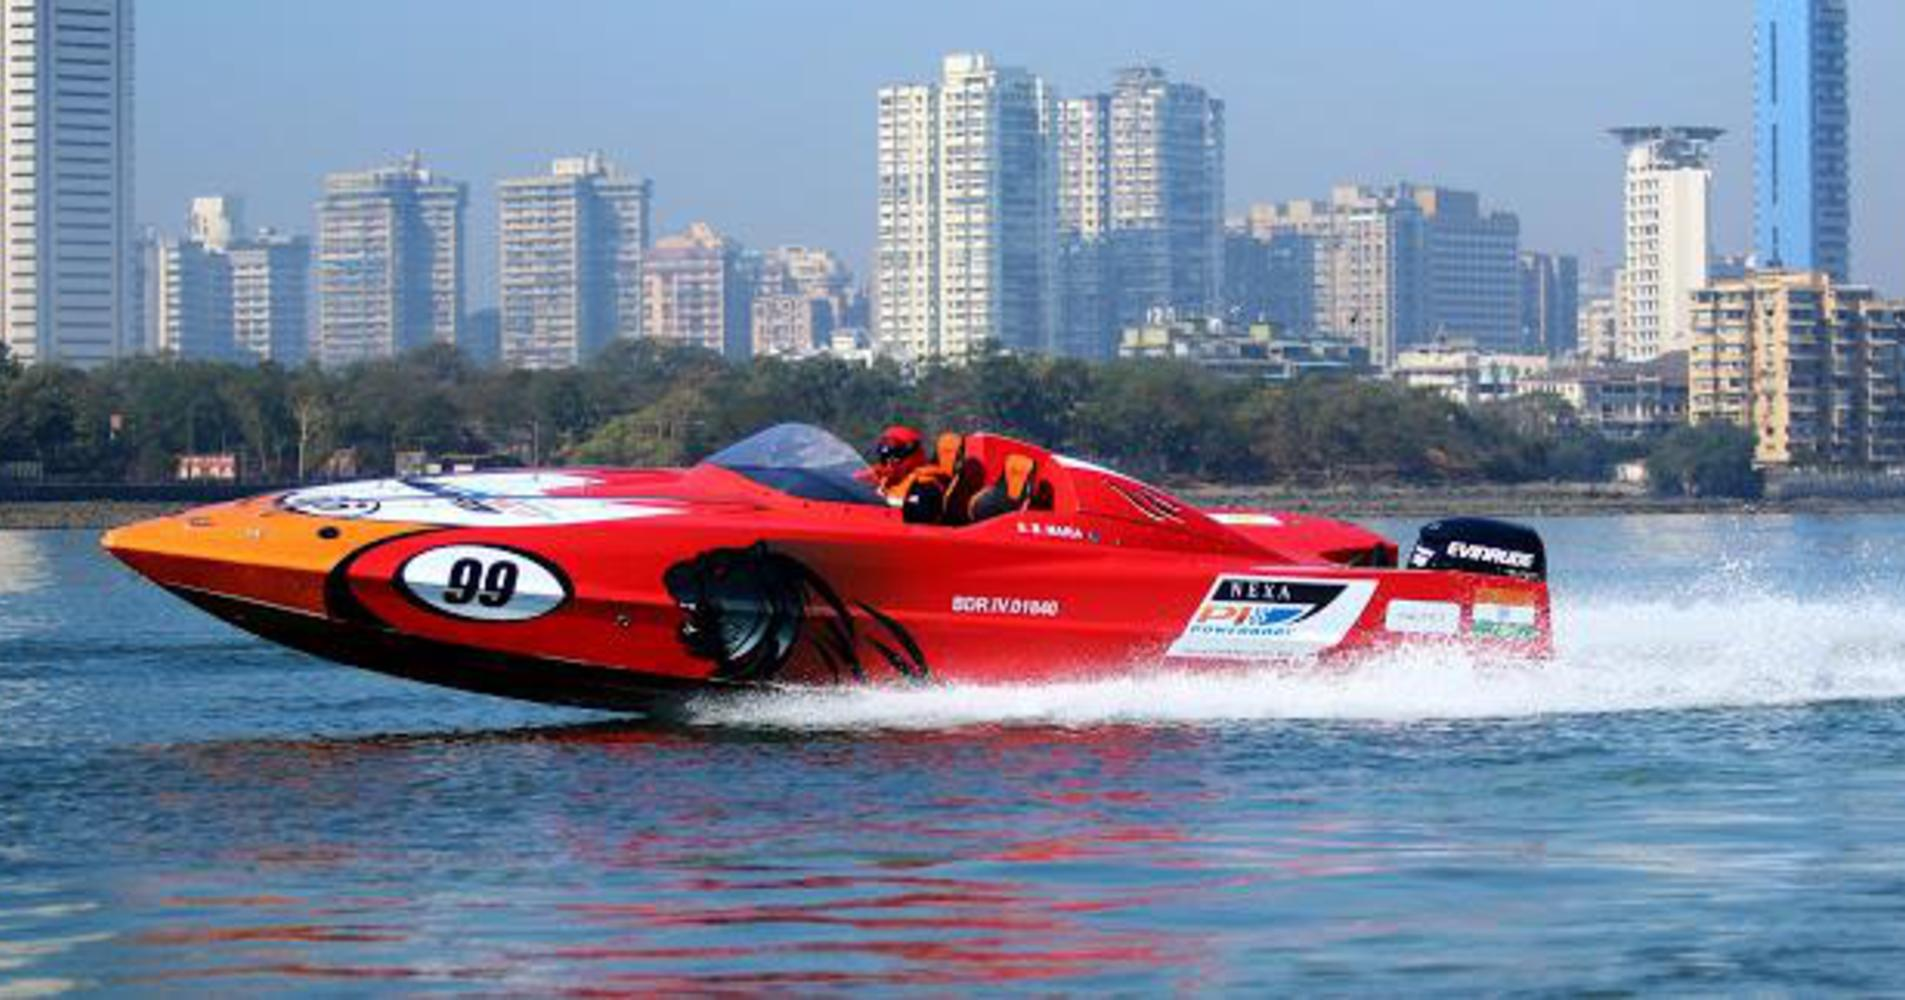 Mumbai will play host to the NEXA P1 Powerboat Indian Grand Prix of the Seas